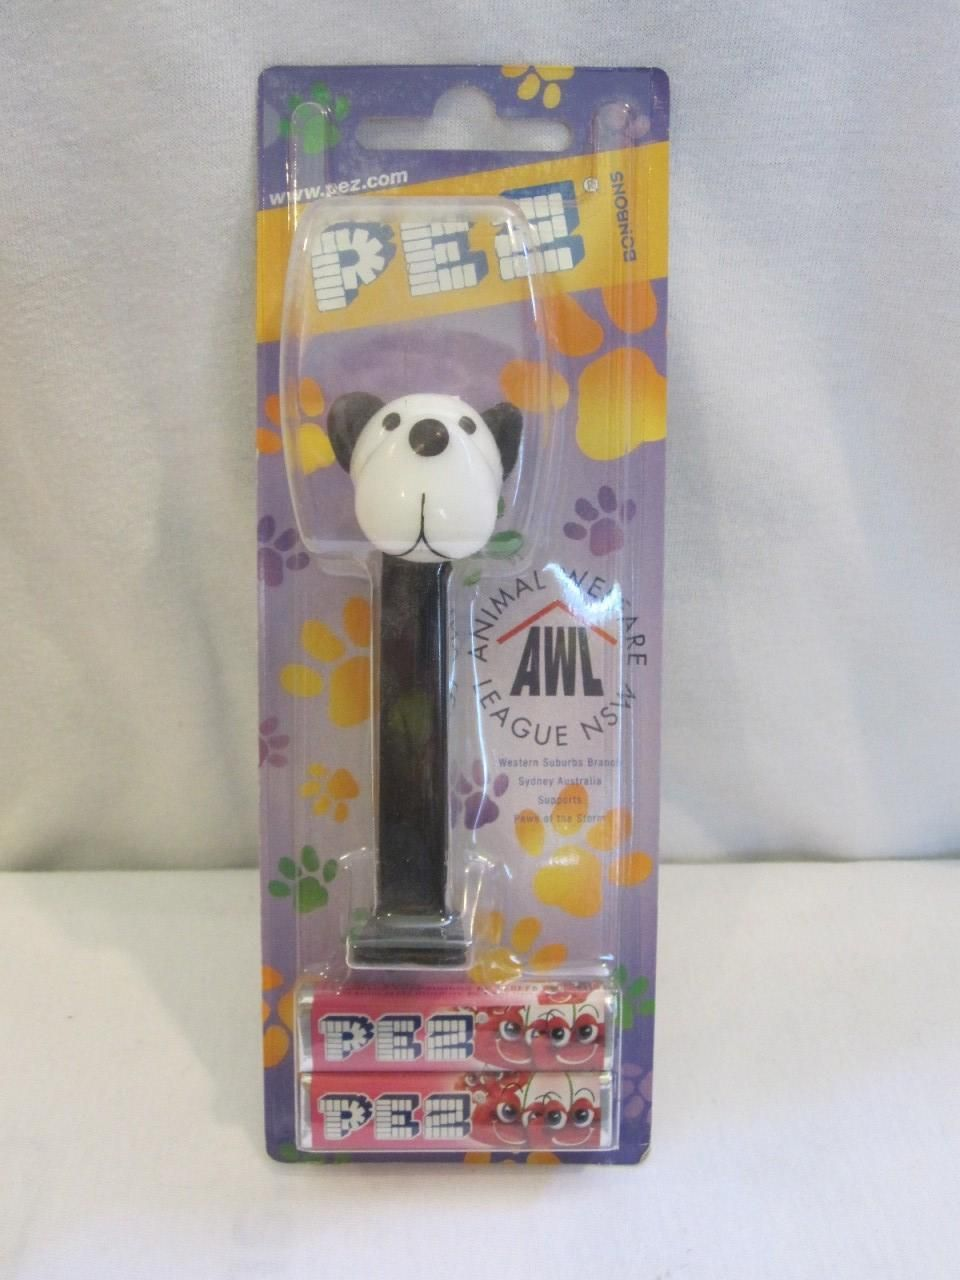 Rare Pez Animal Welfare League Hurricane Barky Brown Pez Limited Edition Ebay Presents For Kids Pink Easter Pez Dispensers